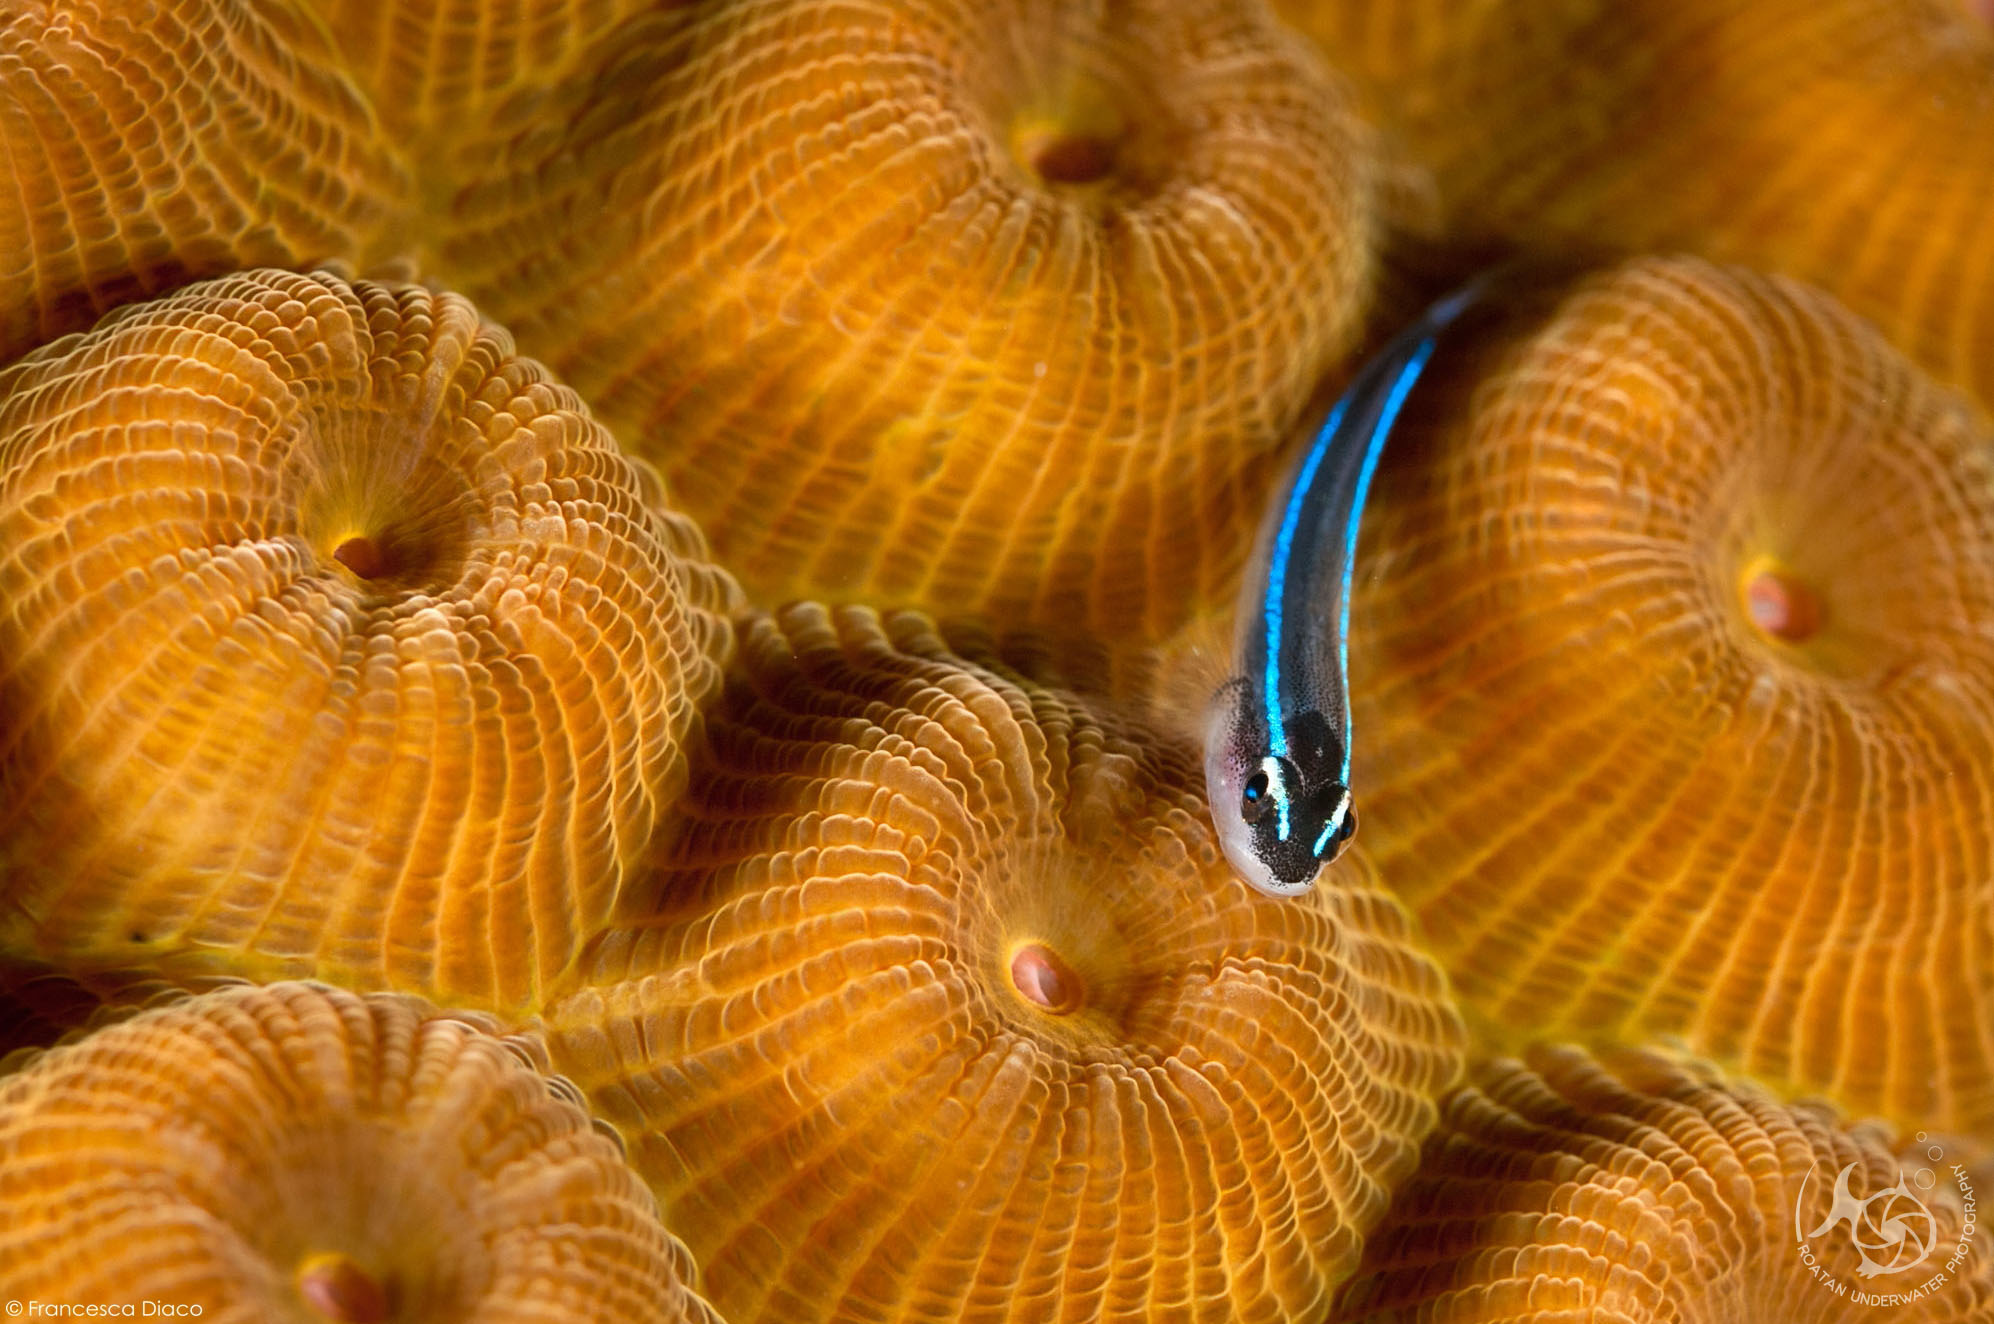 Francesca'a photo of a Caribbean Neon Goby appeared in the 2nd quarter 2015 edition of  The Undersea Journal.